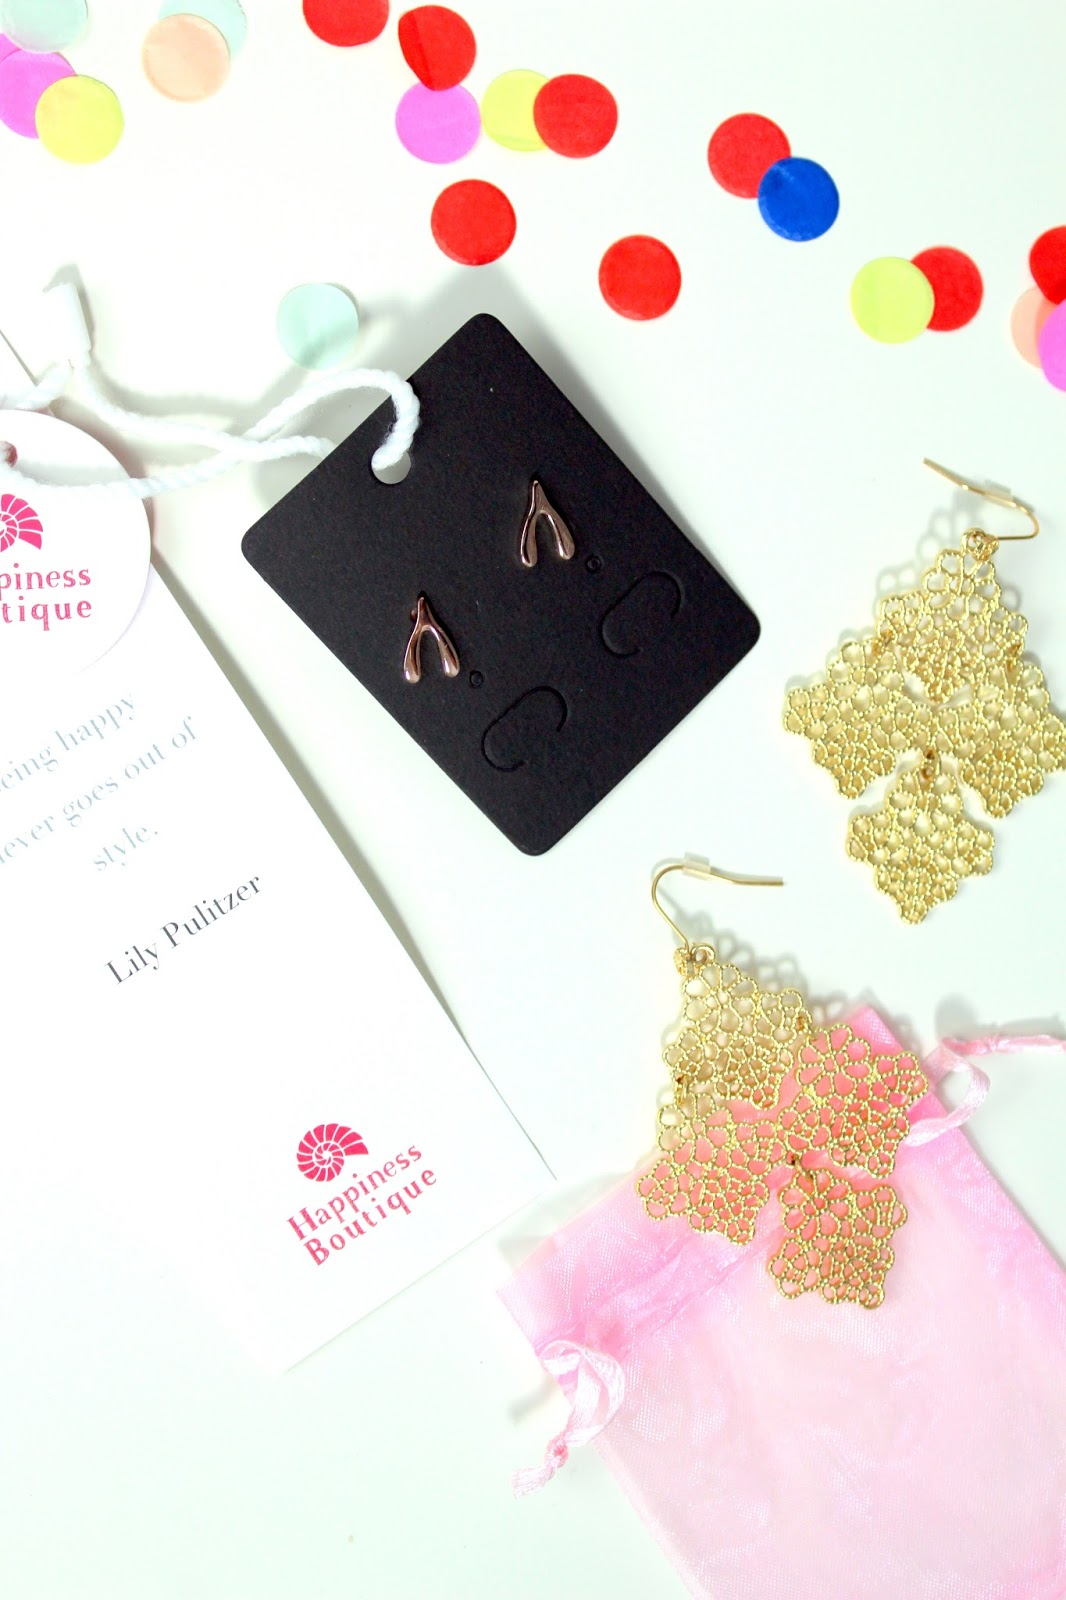 happiness boutique earrings review